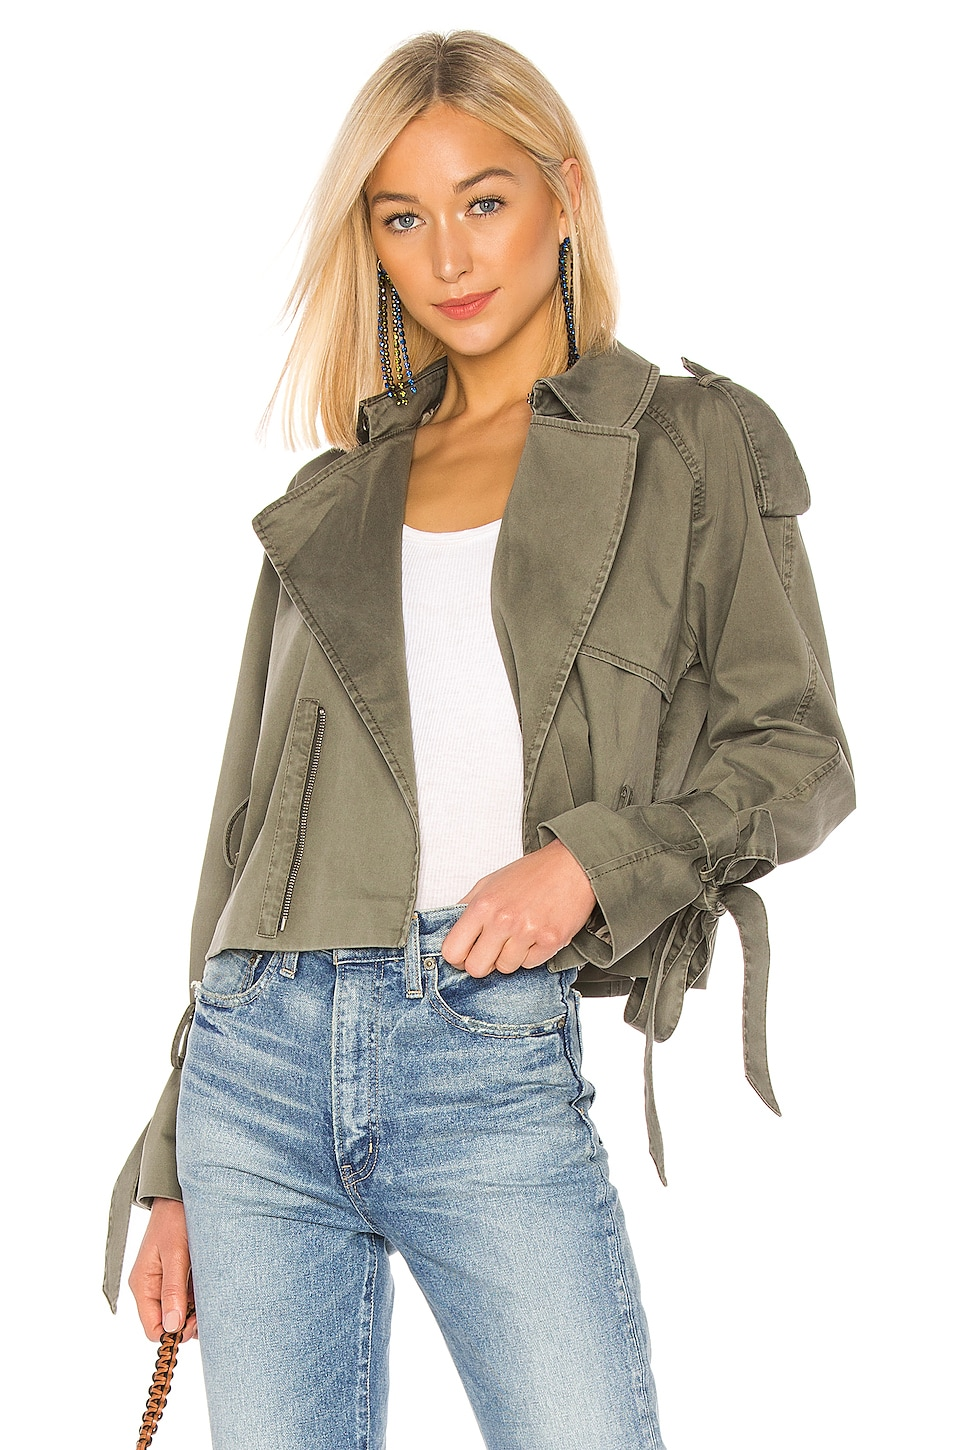 Anine Bing Jackets ANINE BING ARIA JACKET IN OLIVE.